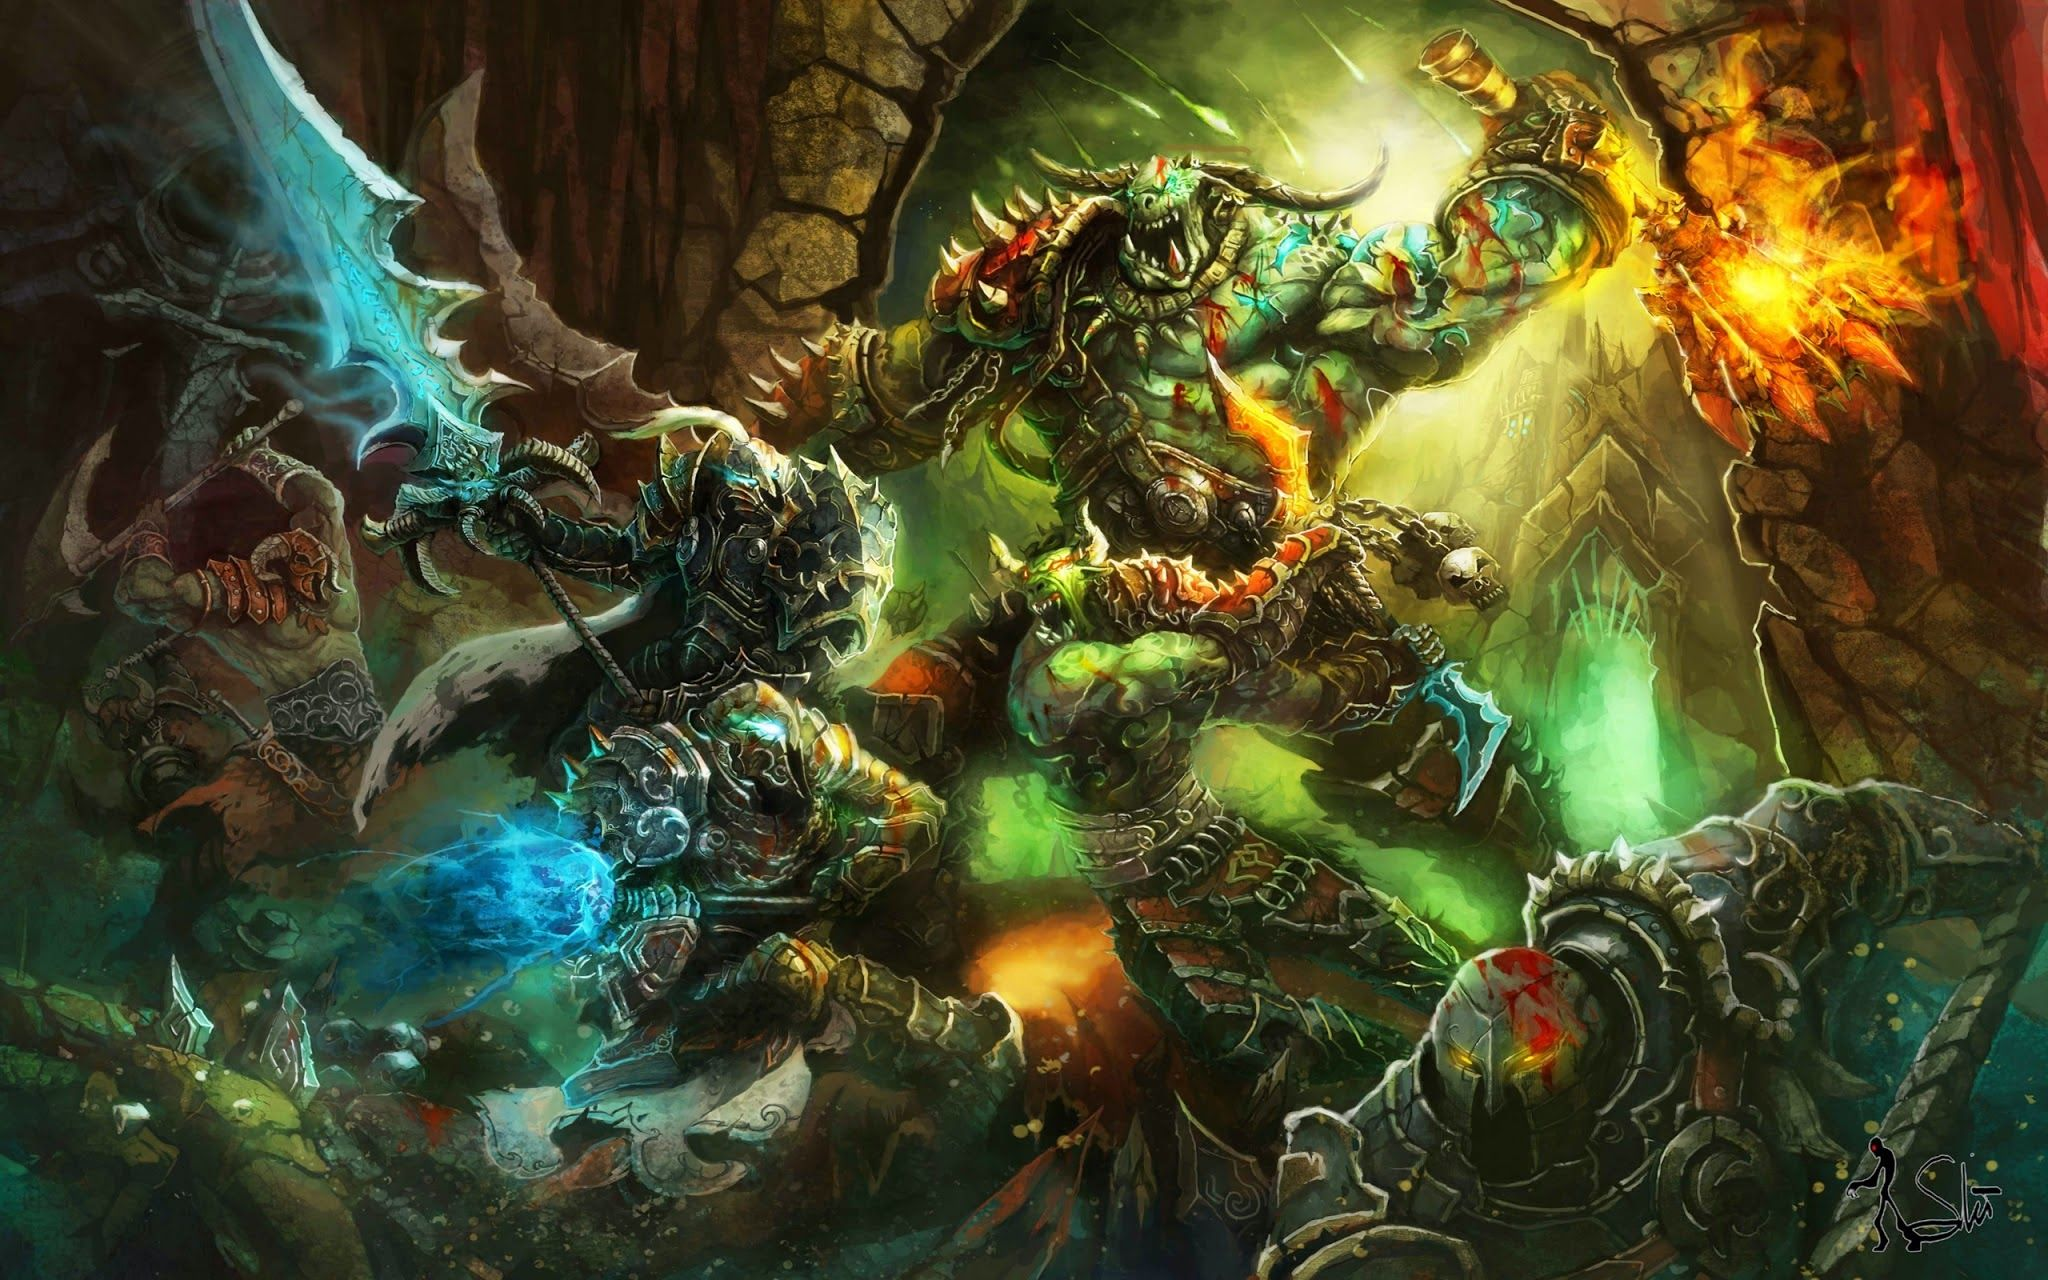 Epic Hd Wallpapers World Of Warcraft World Of Warcraft Legion